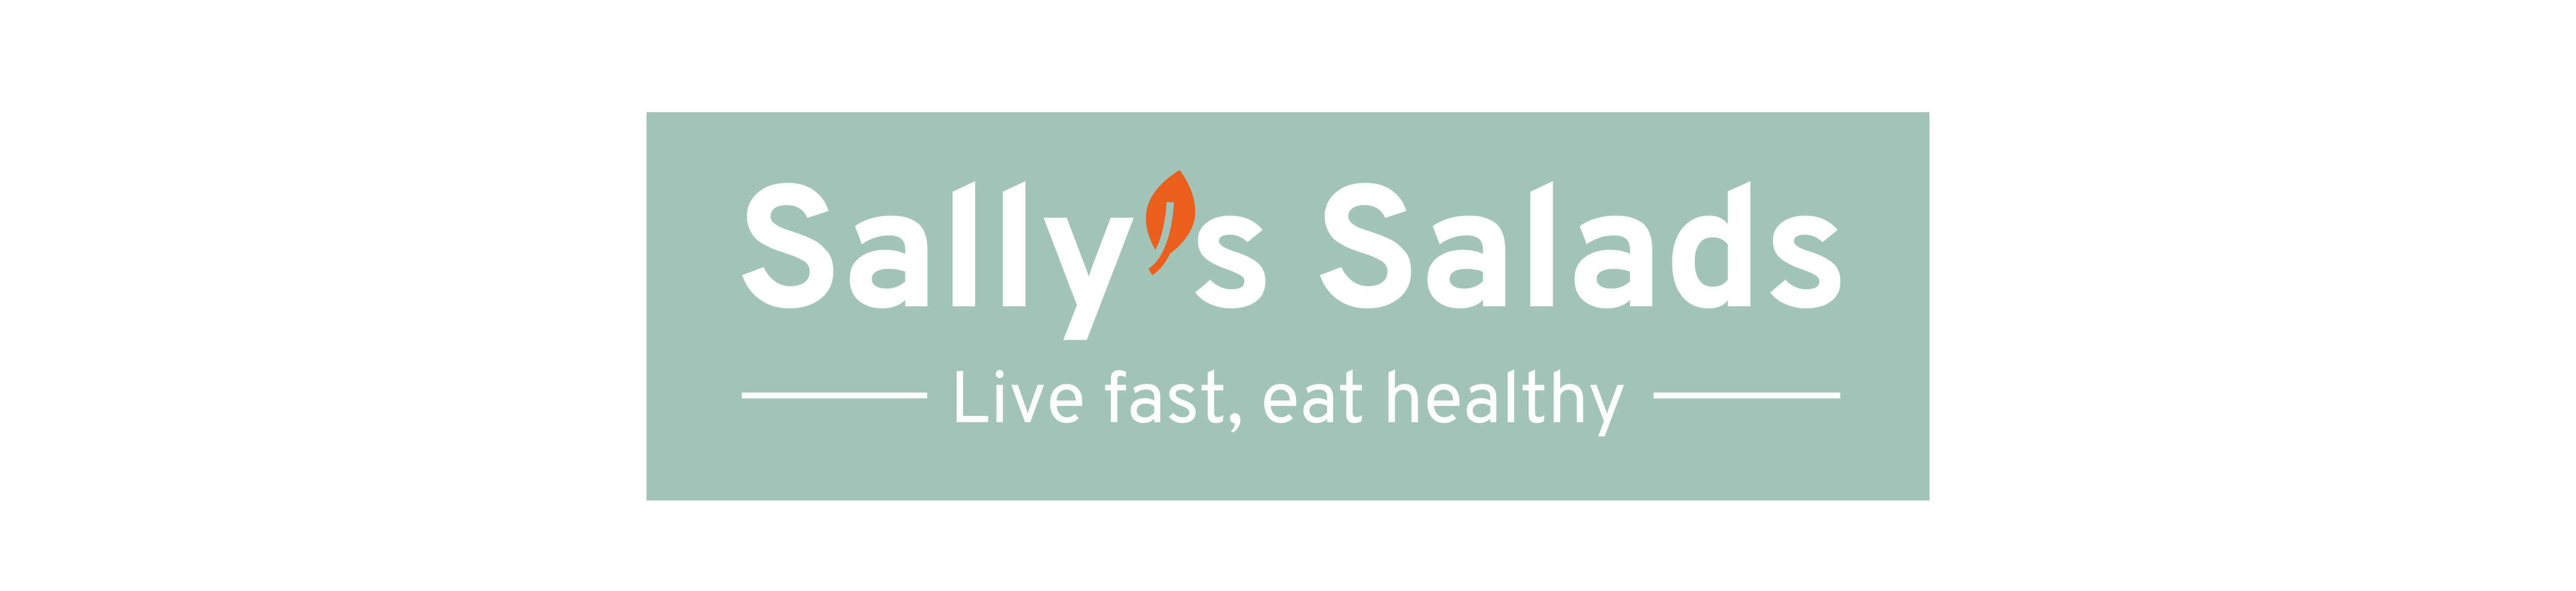 Sally's Salads, logo, Mixus studio